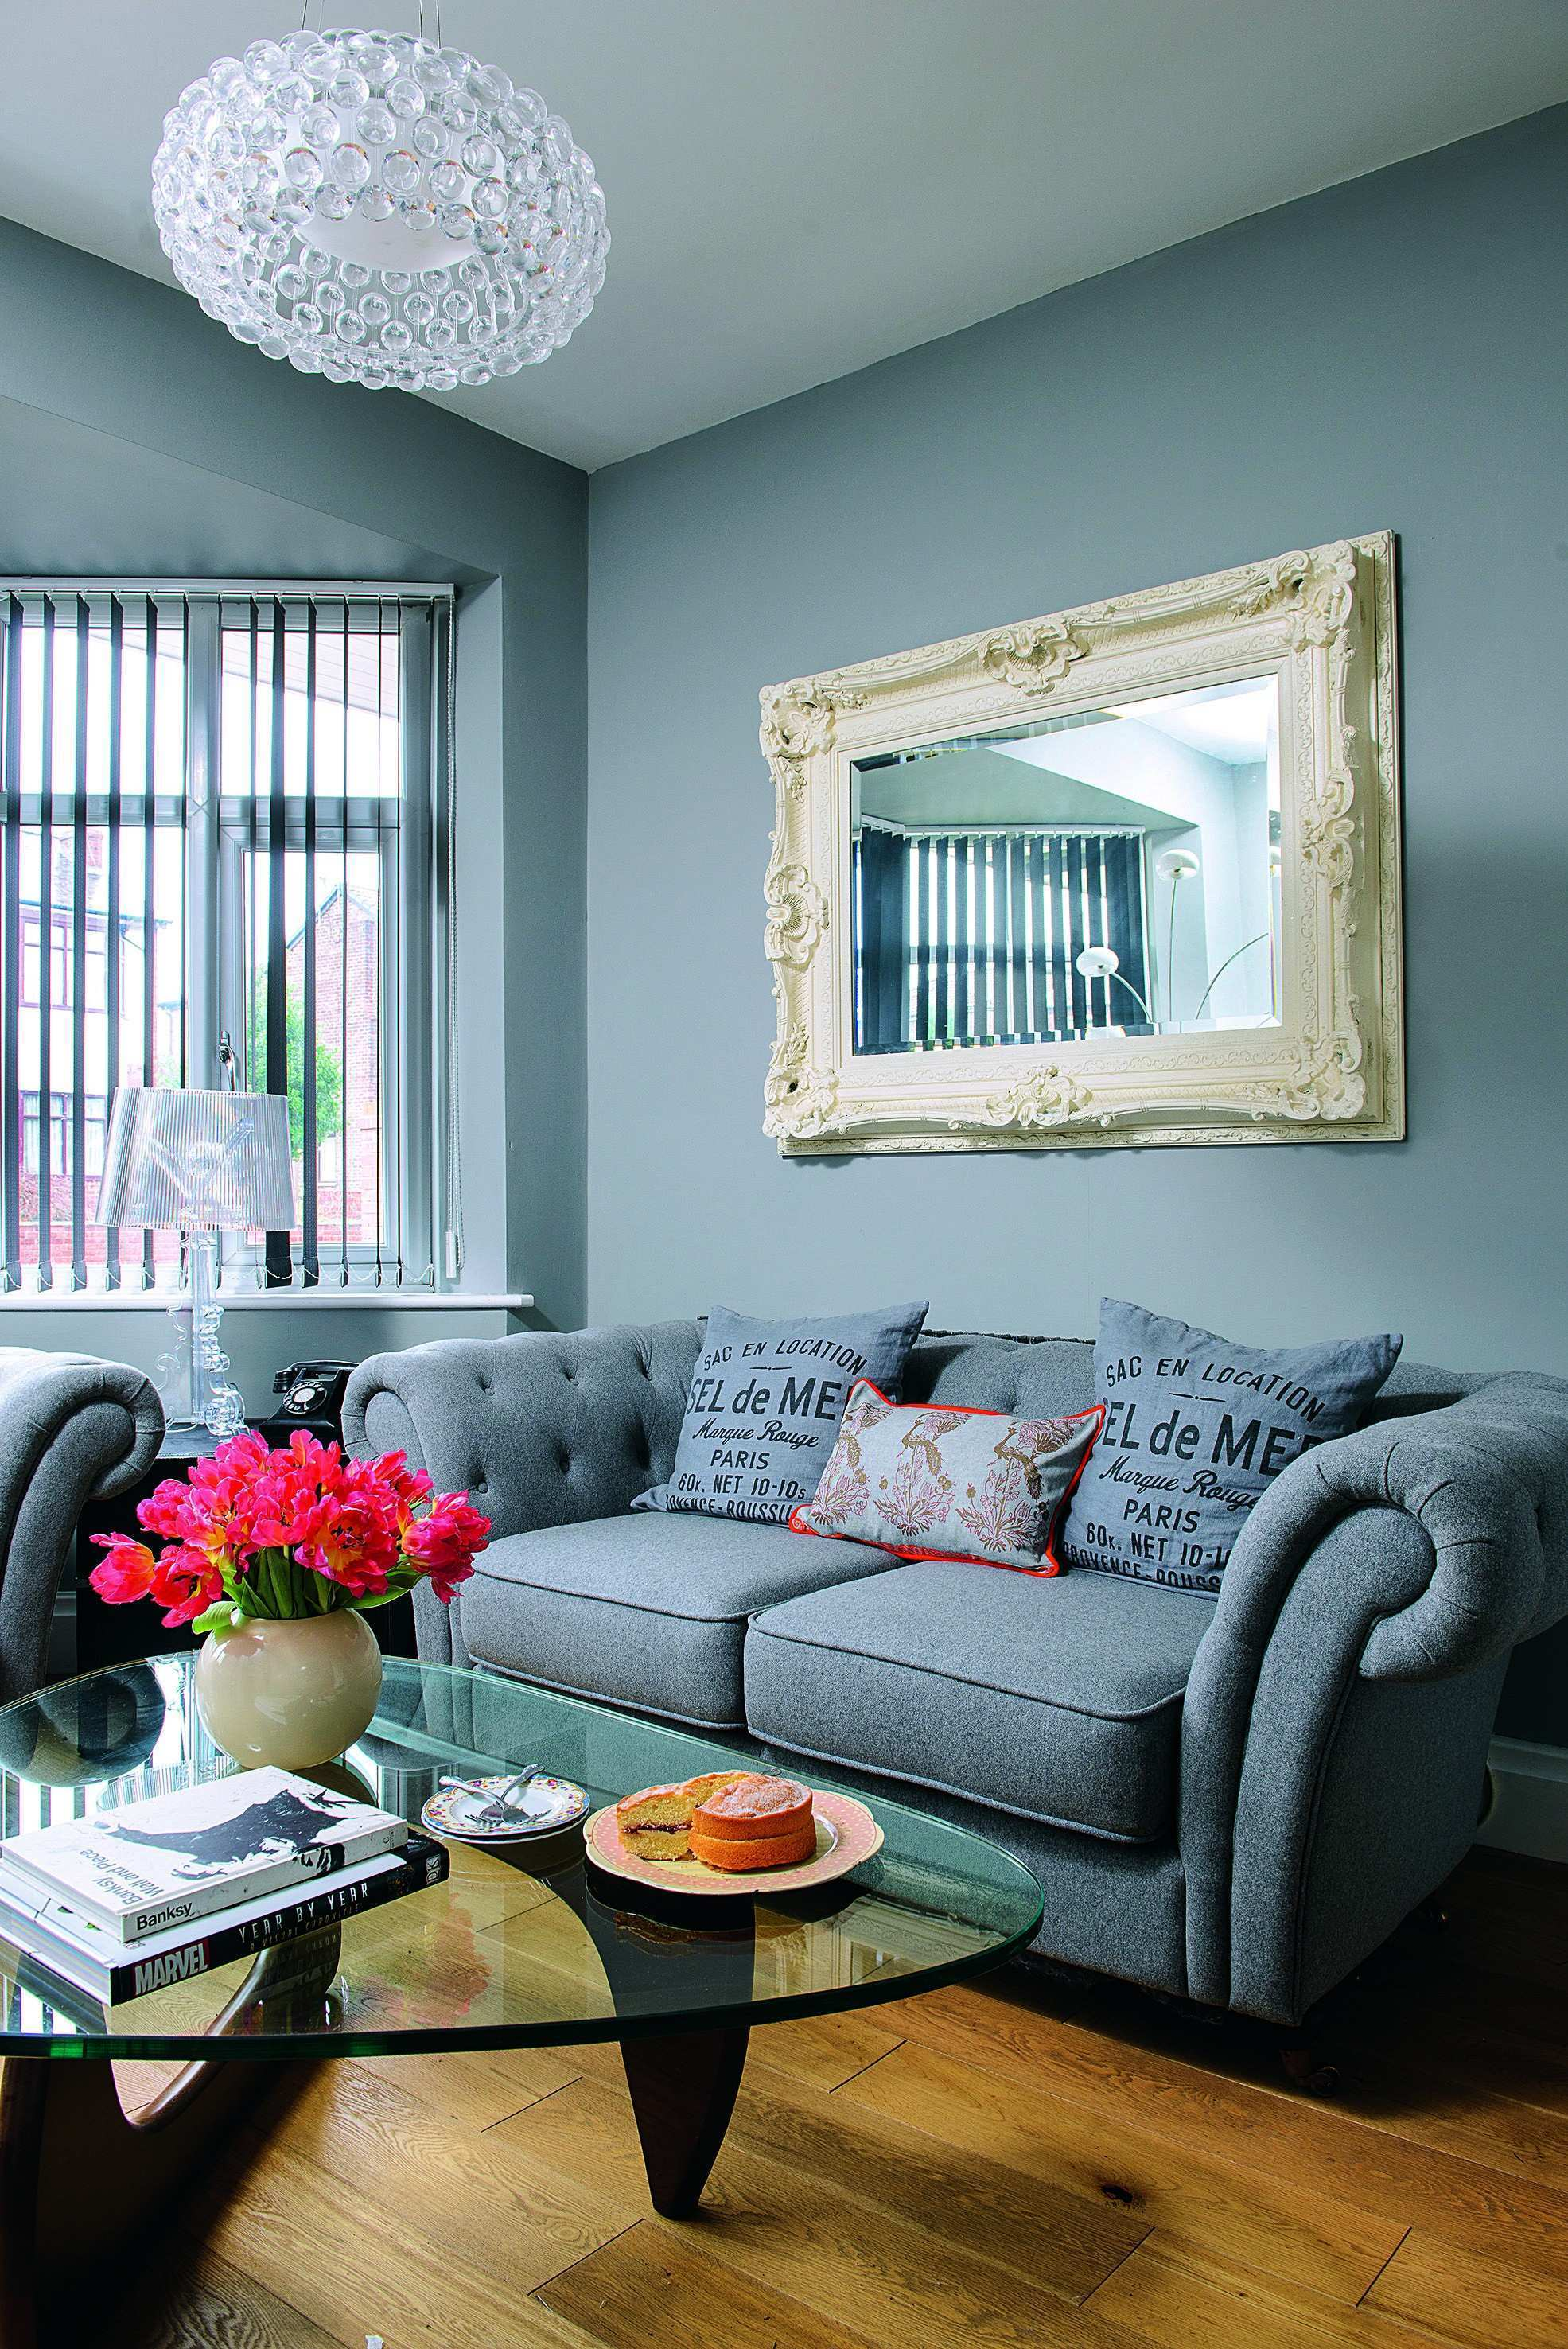 Hang a statement mirror above your sofa to make the space feel